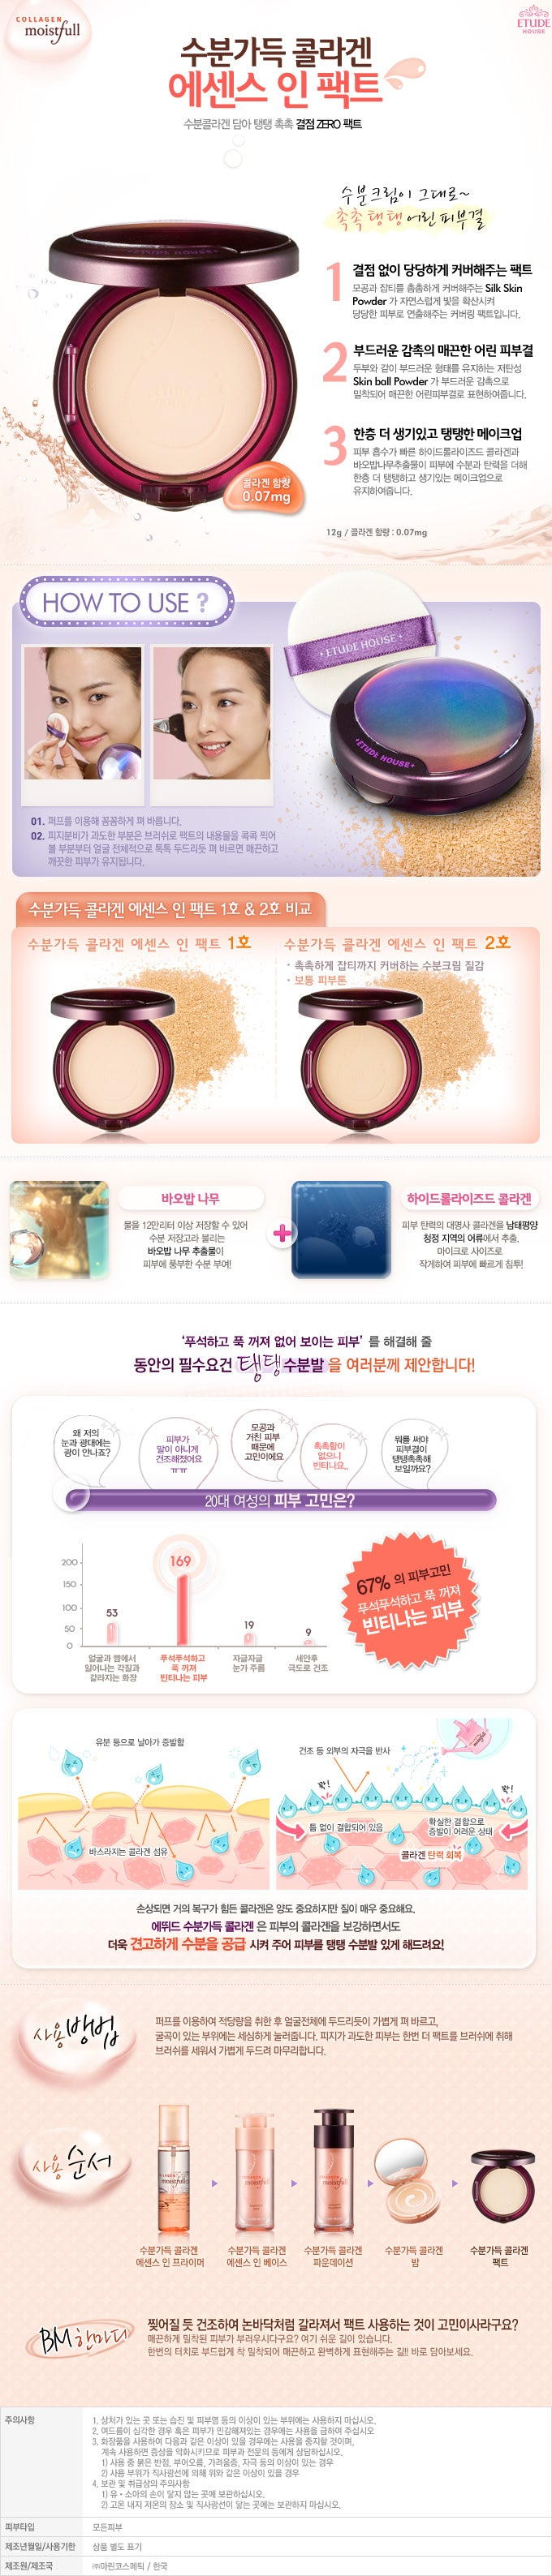 Etude House - Moistfull Collagen Essence In Pact